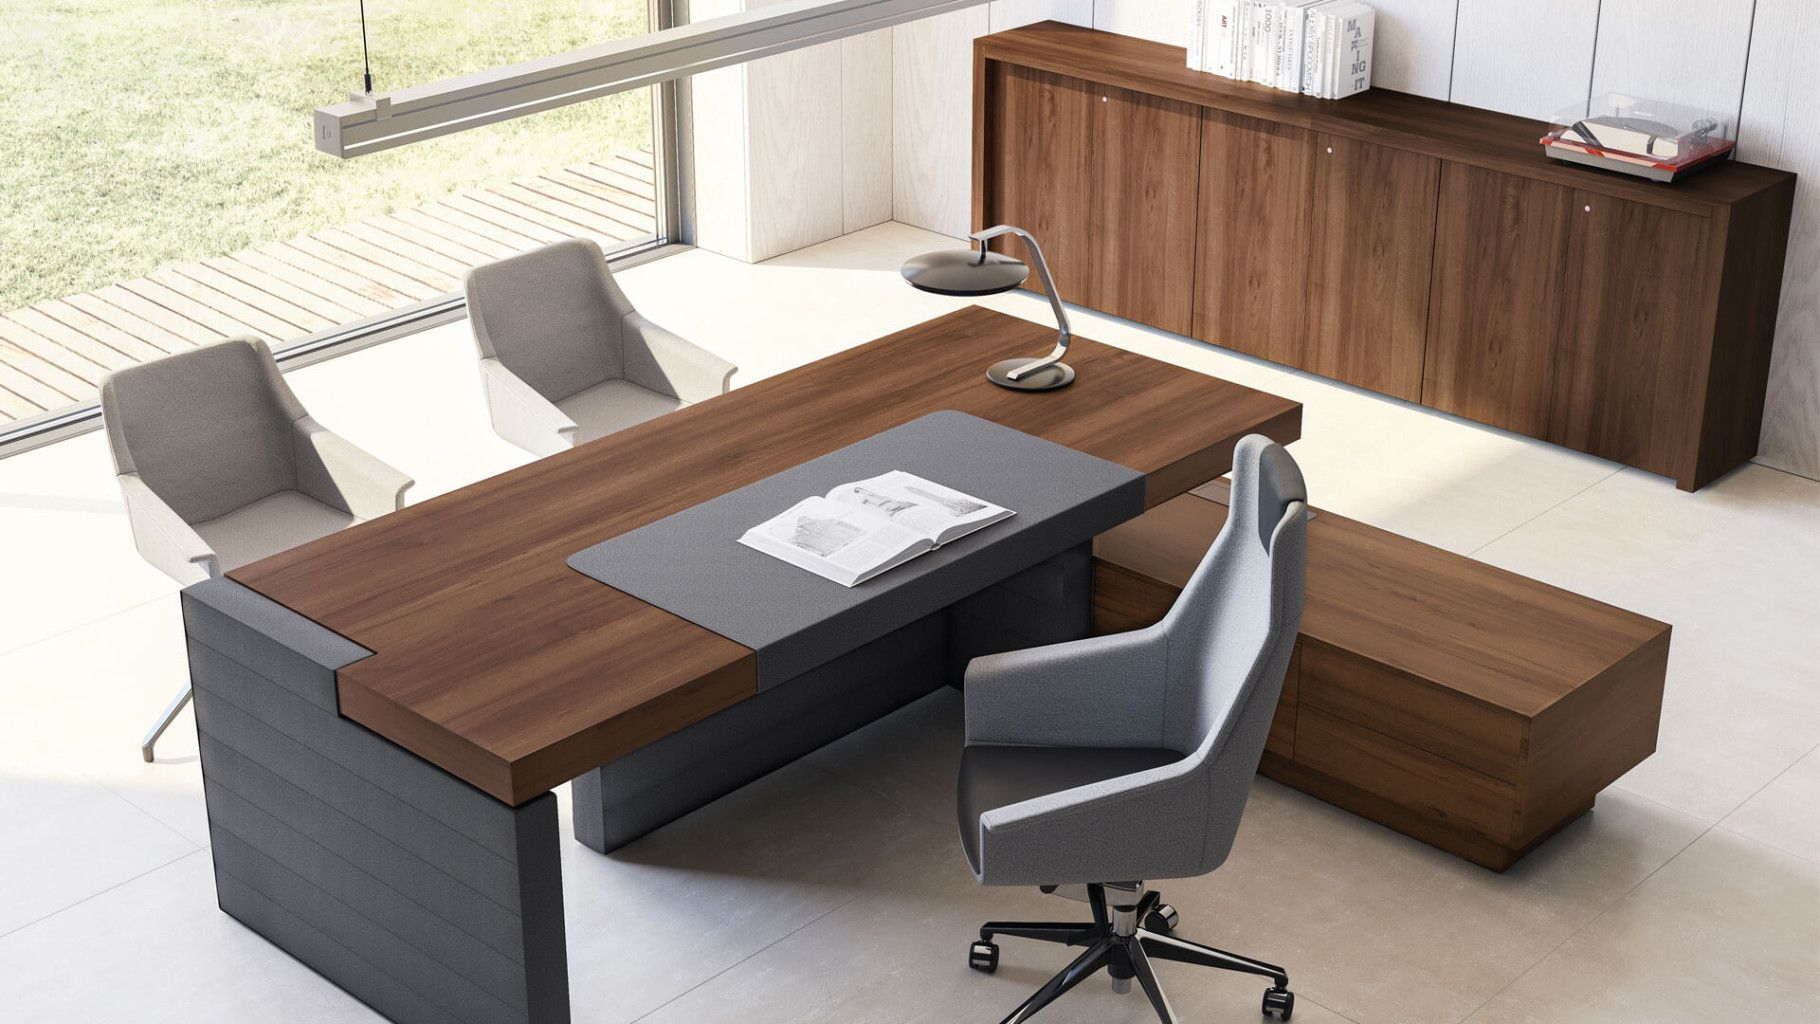 Executive Office Furniture: JERA Executive Office Furniture